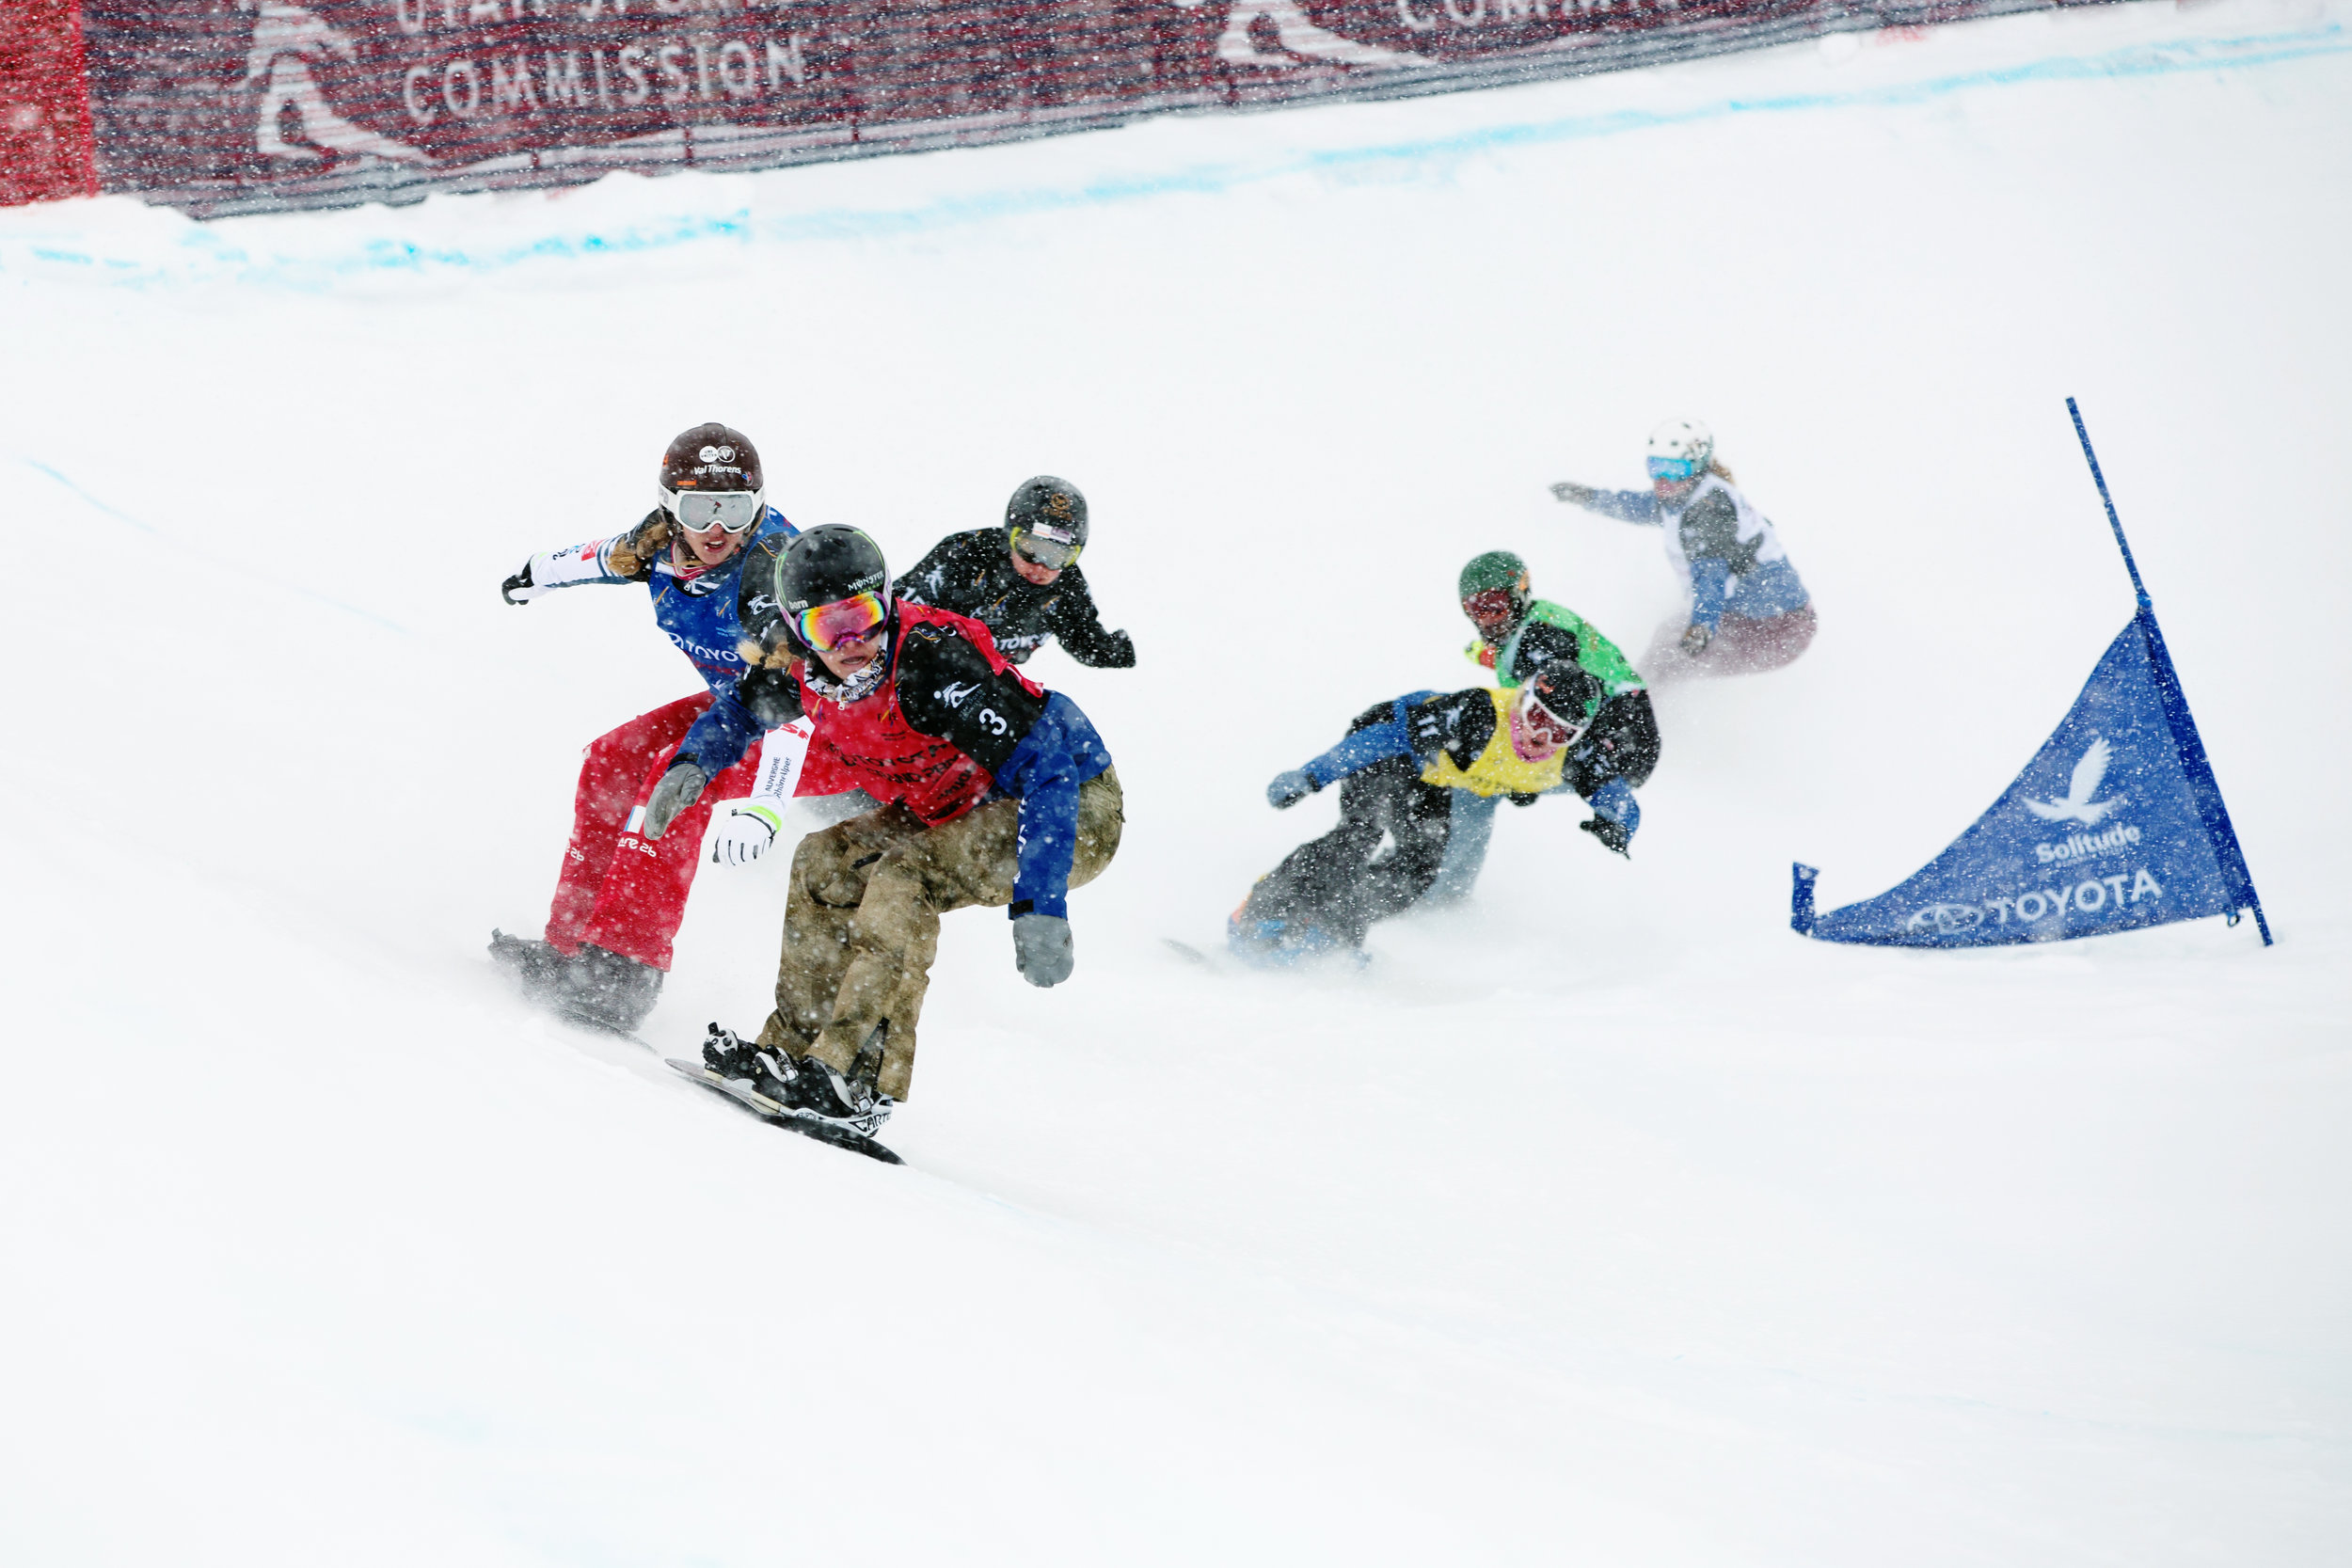 2017 Toyota U.S. Grand Prix - Snowboardcross at Solitude Resort